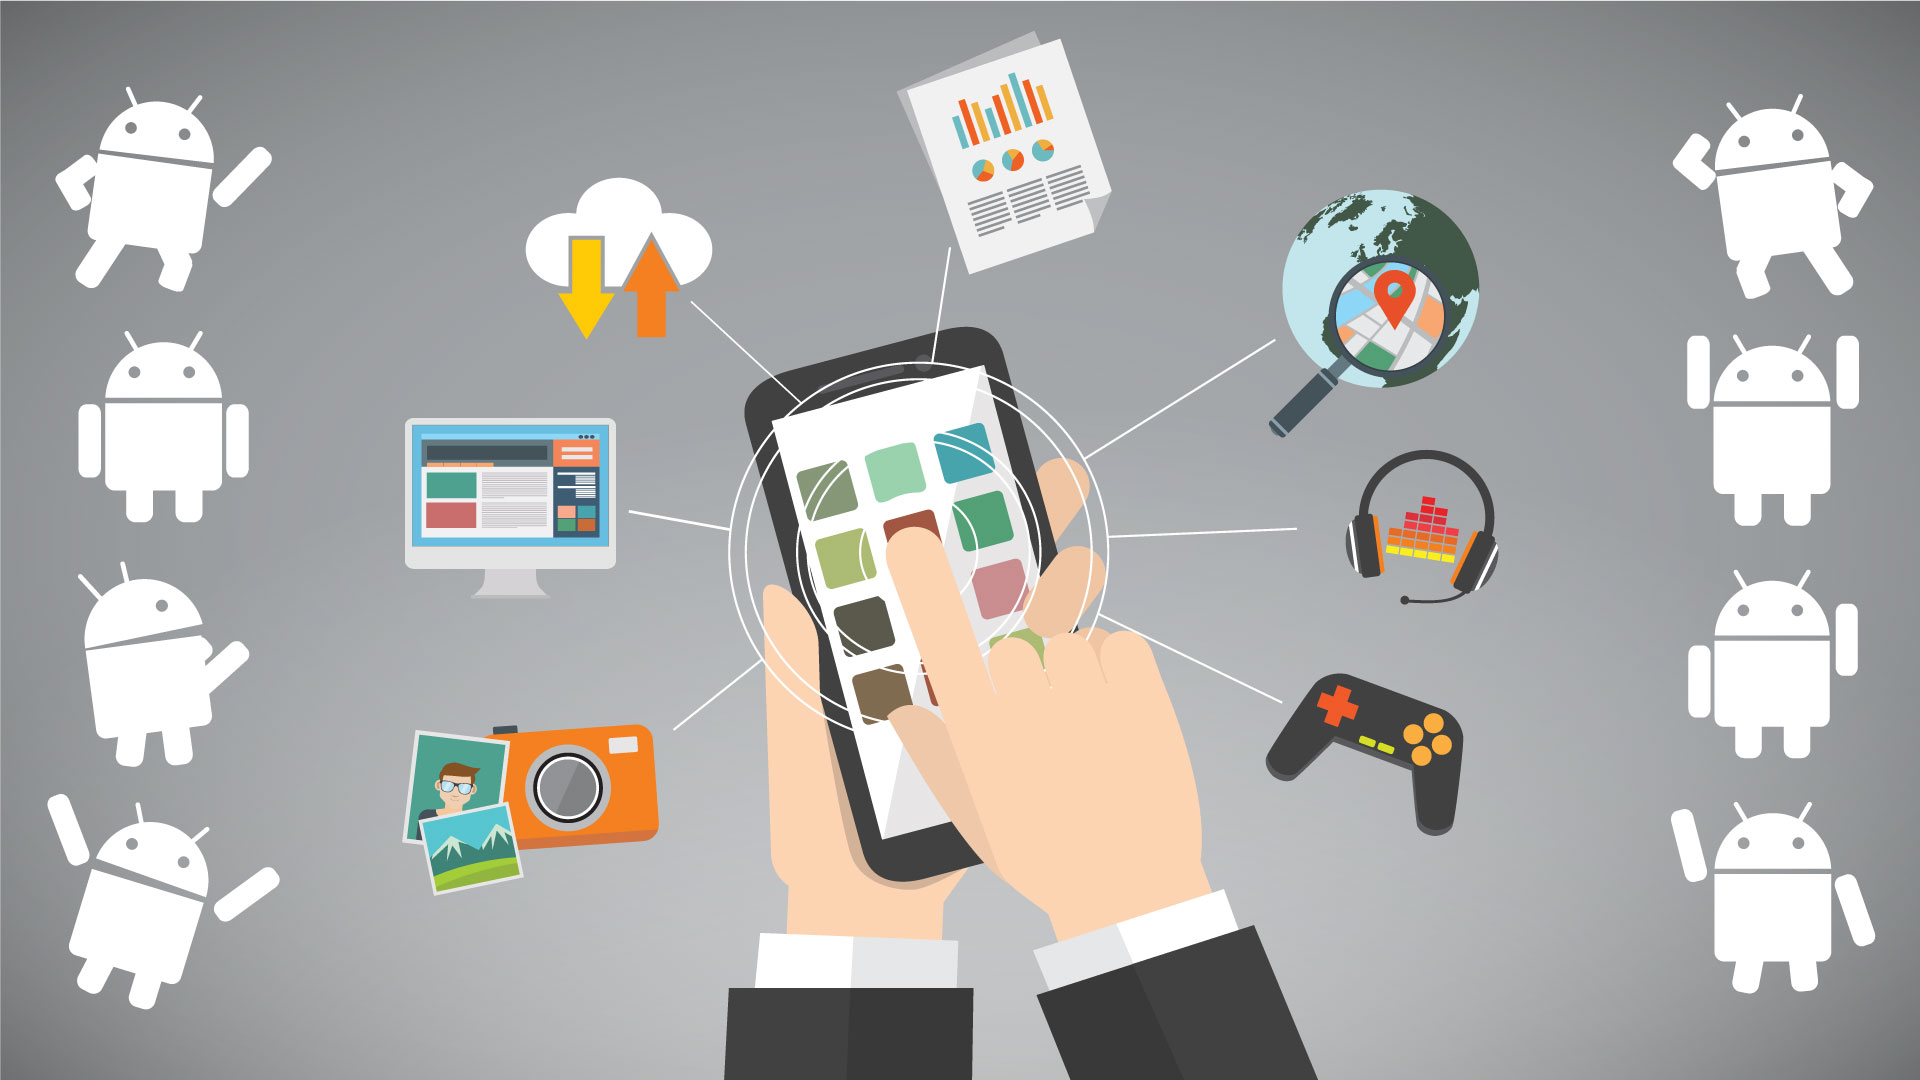 Best Android Training Company In Chandigarh